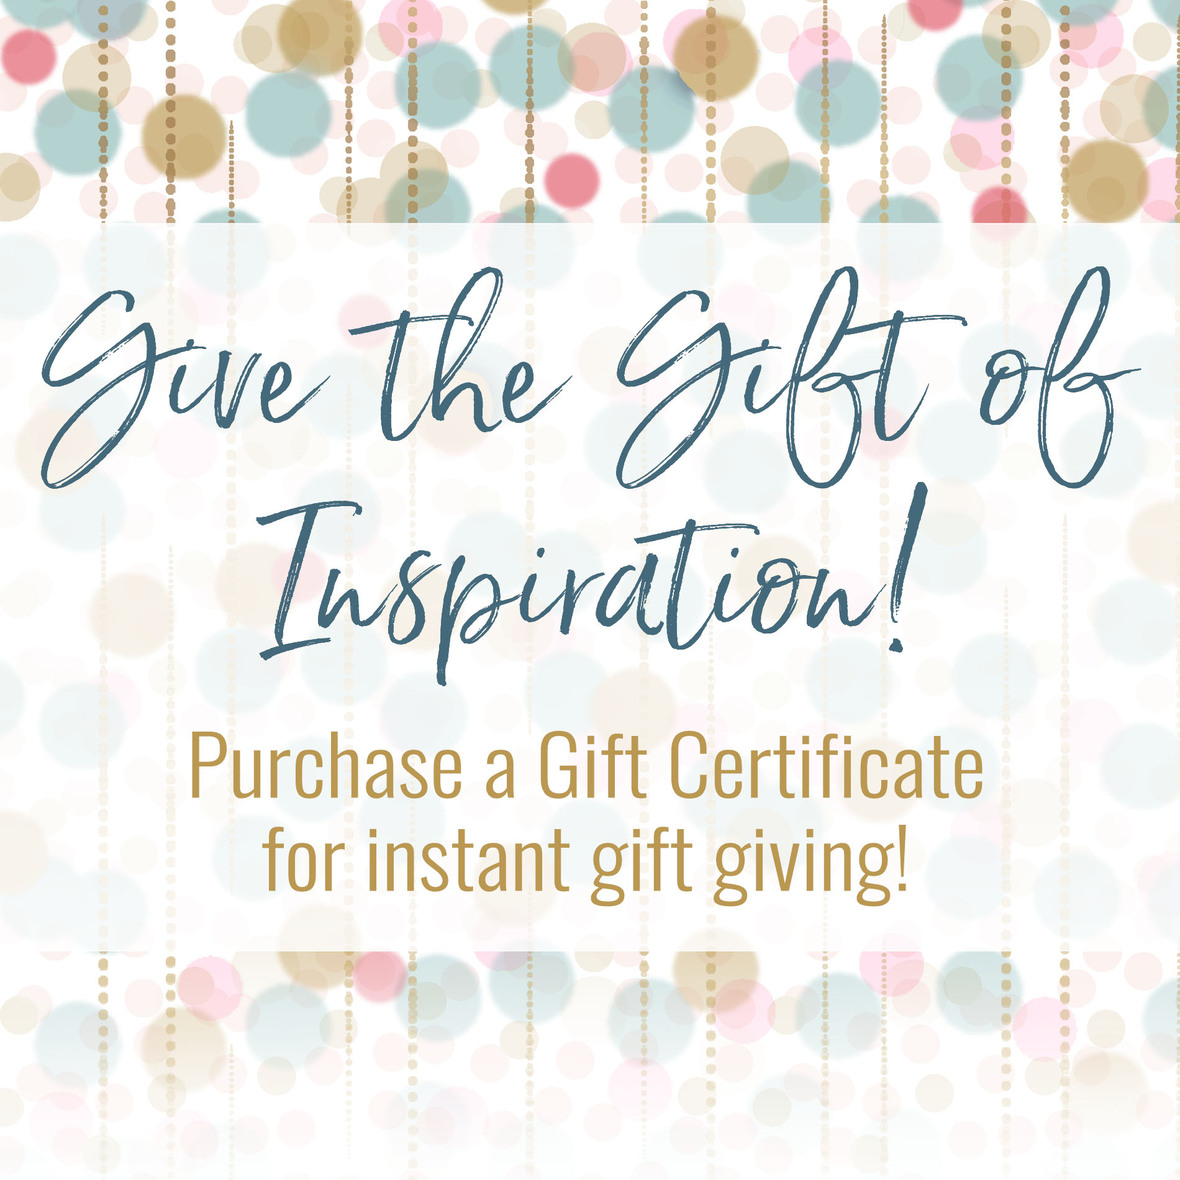 2018 Gift Certificate Promo Image